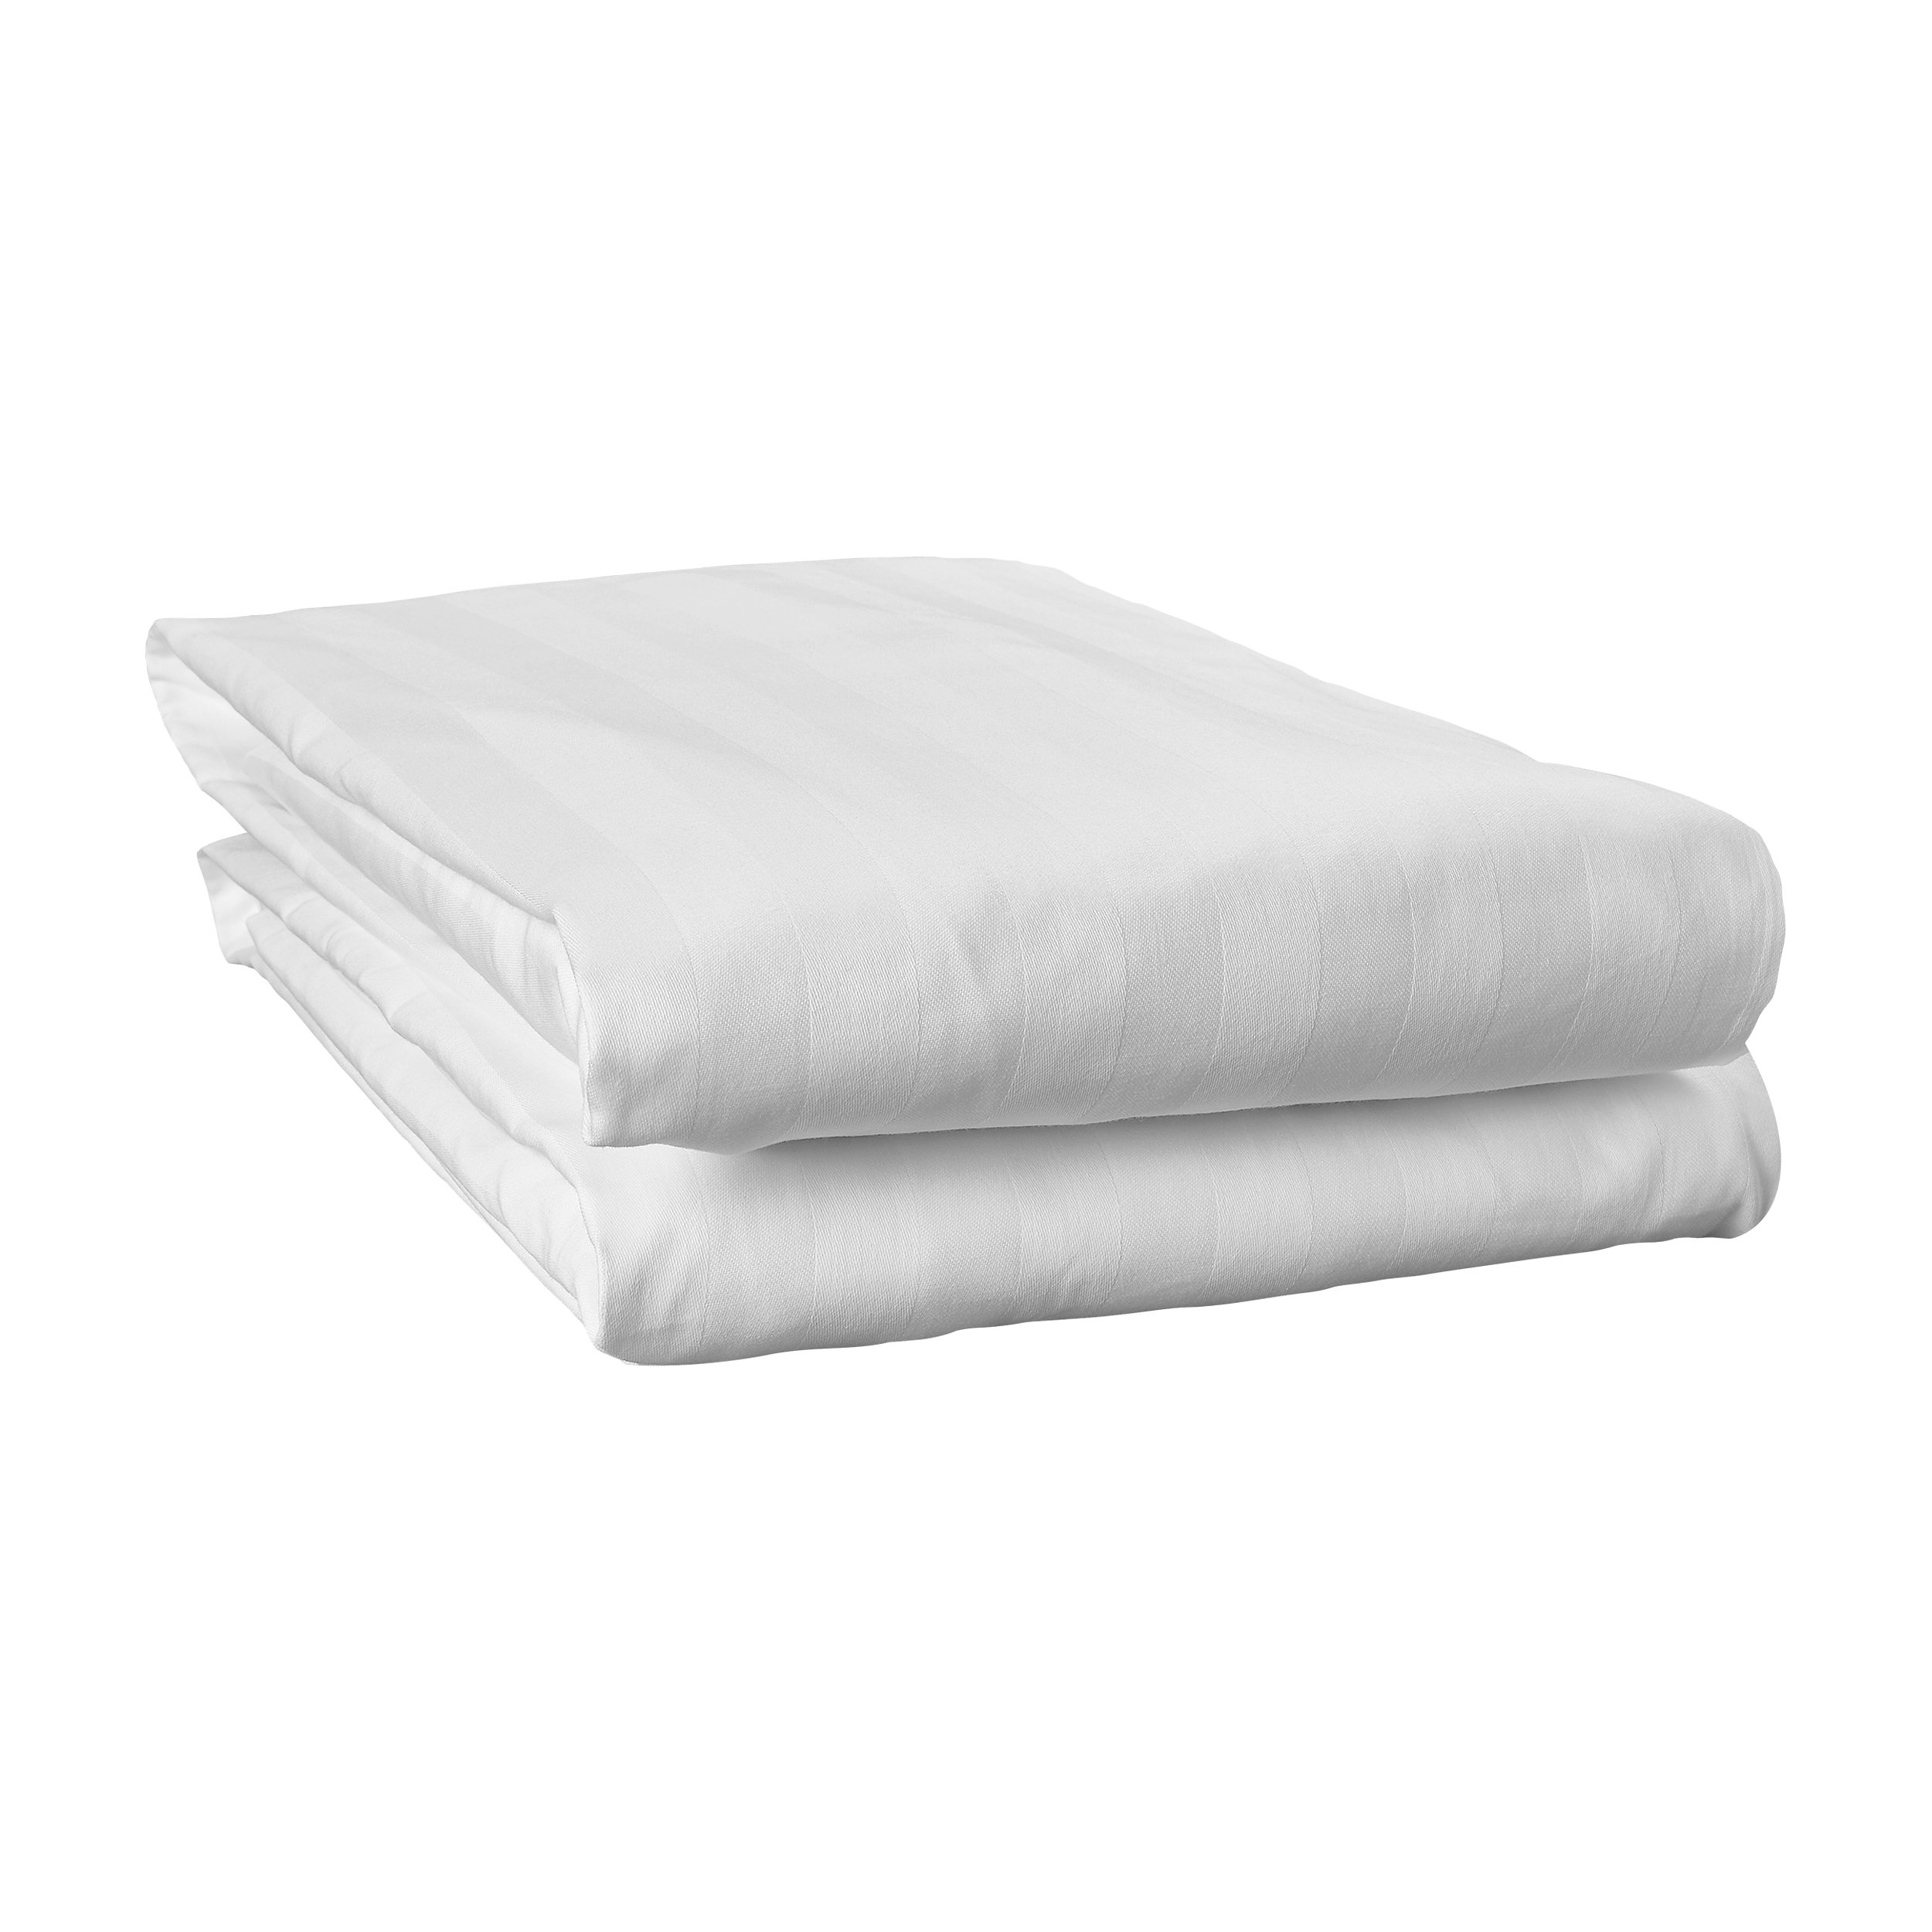 200 Thread Count Polycotton Fitted Valance Sheet King Bed Size in White